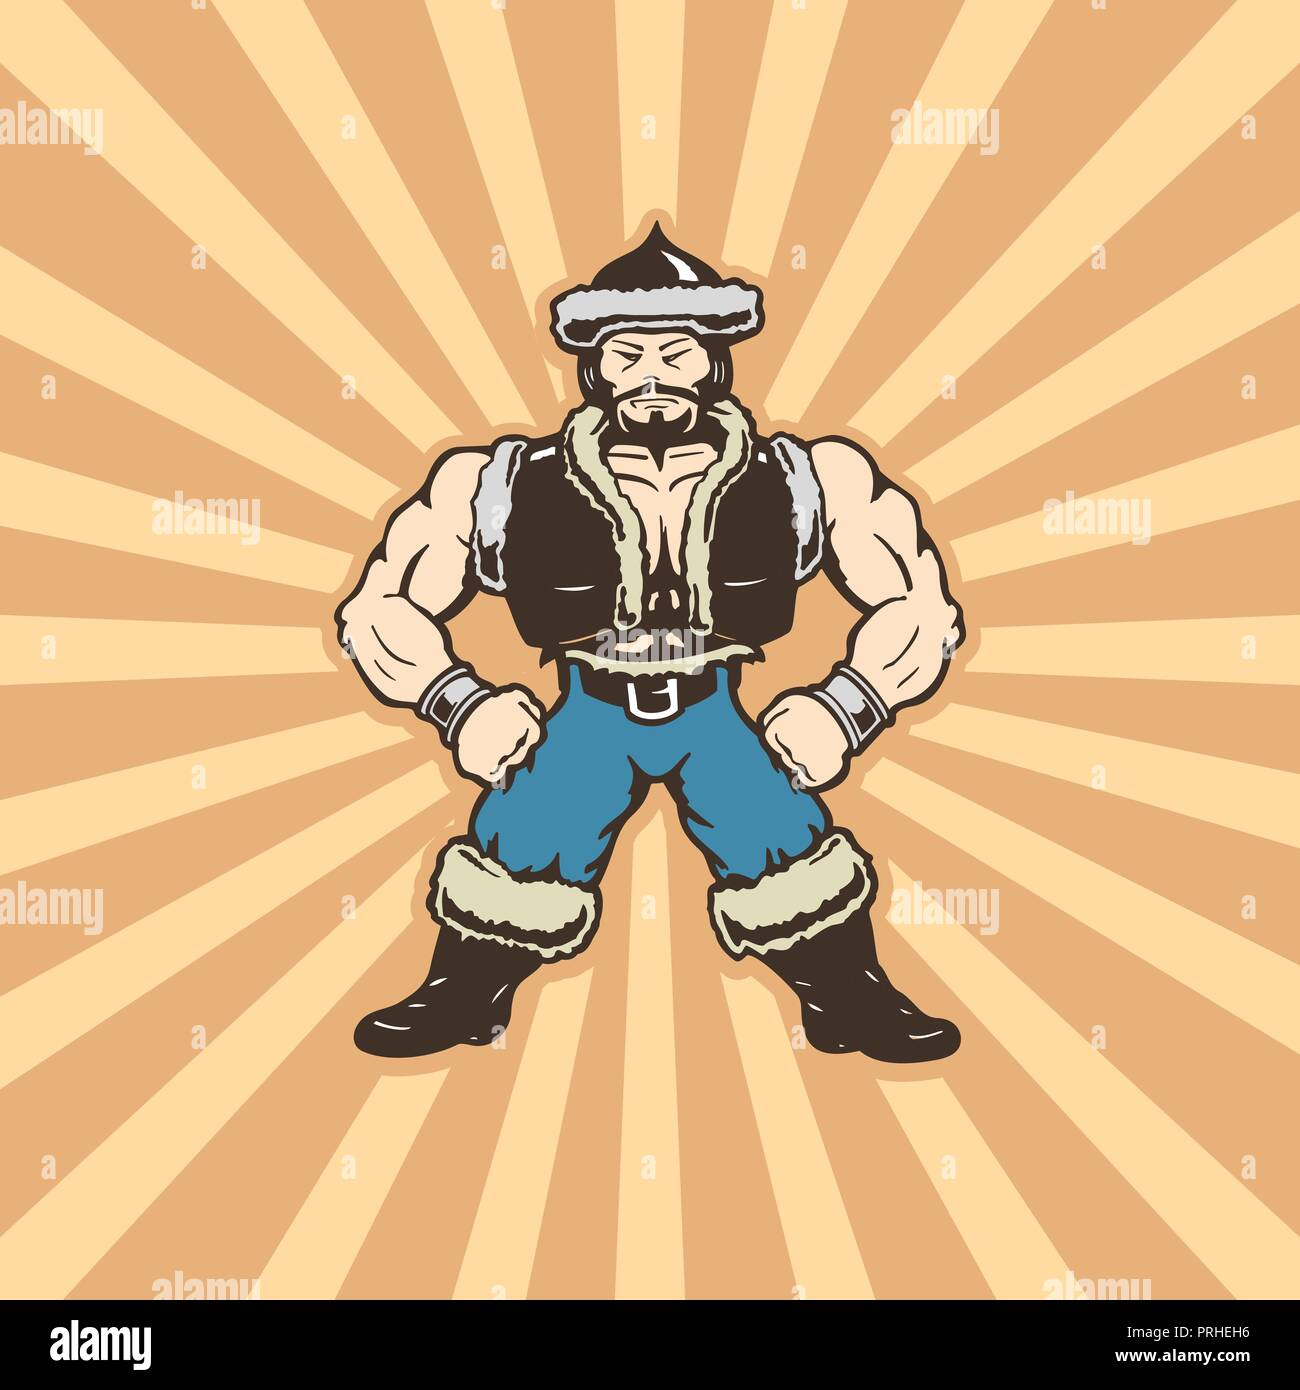 mongolian man cartoons character . cartoon character Vector Illustration. - Stock Vector